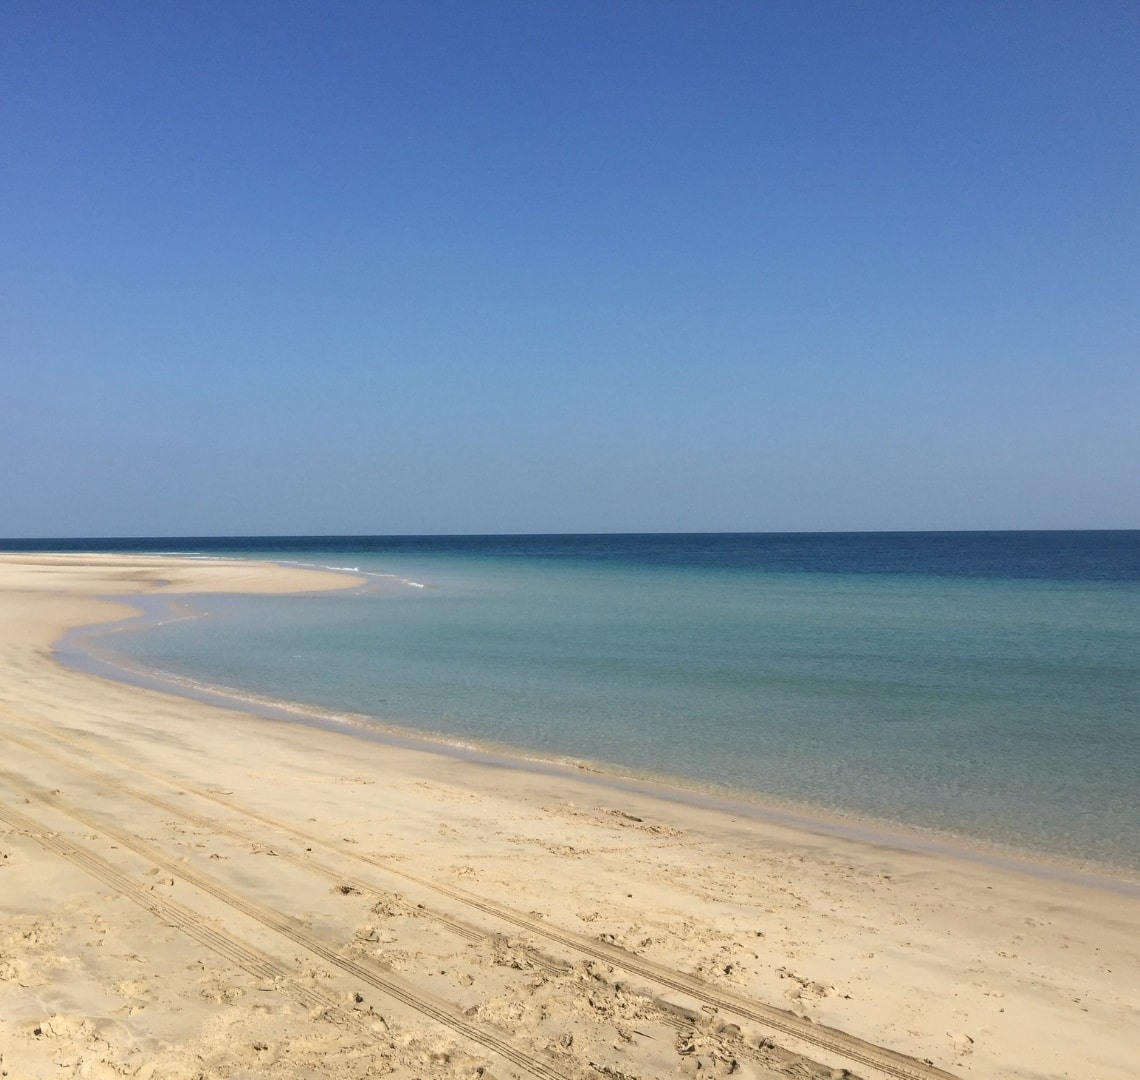 11 incredible things to do in Qatar - sparkling turquoise waters and white sand at the beach